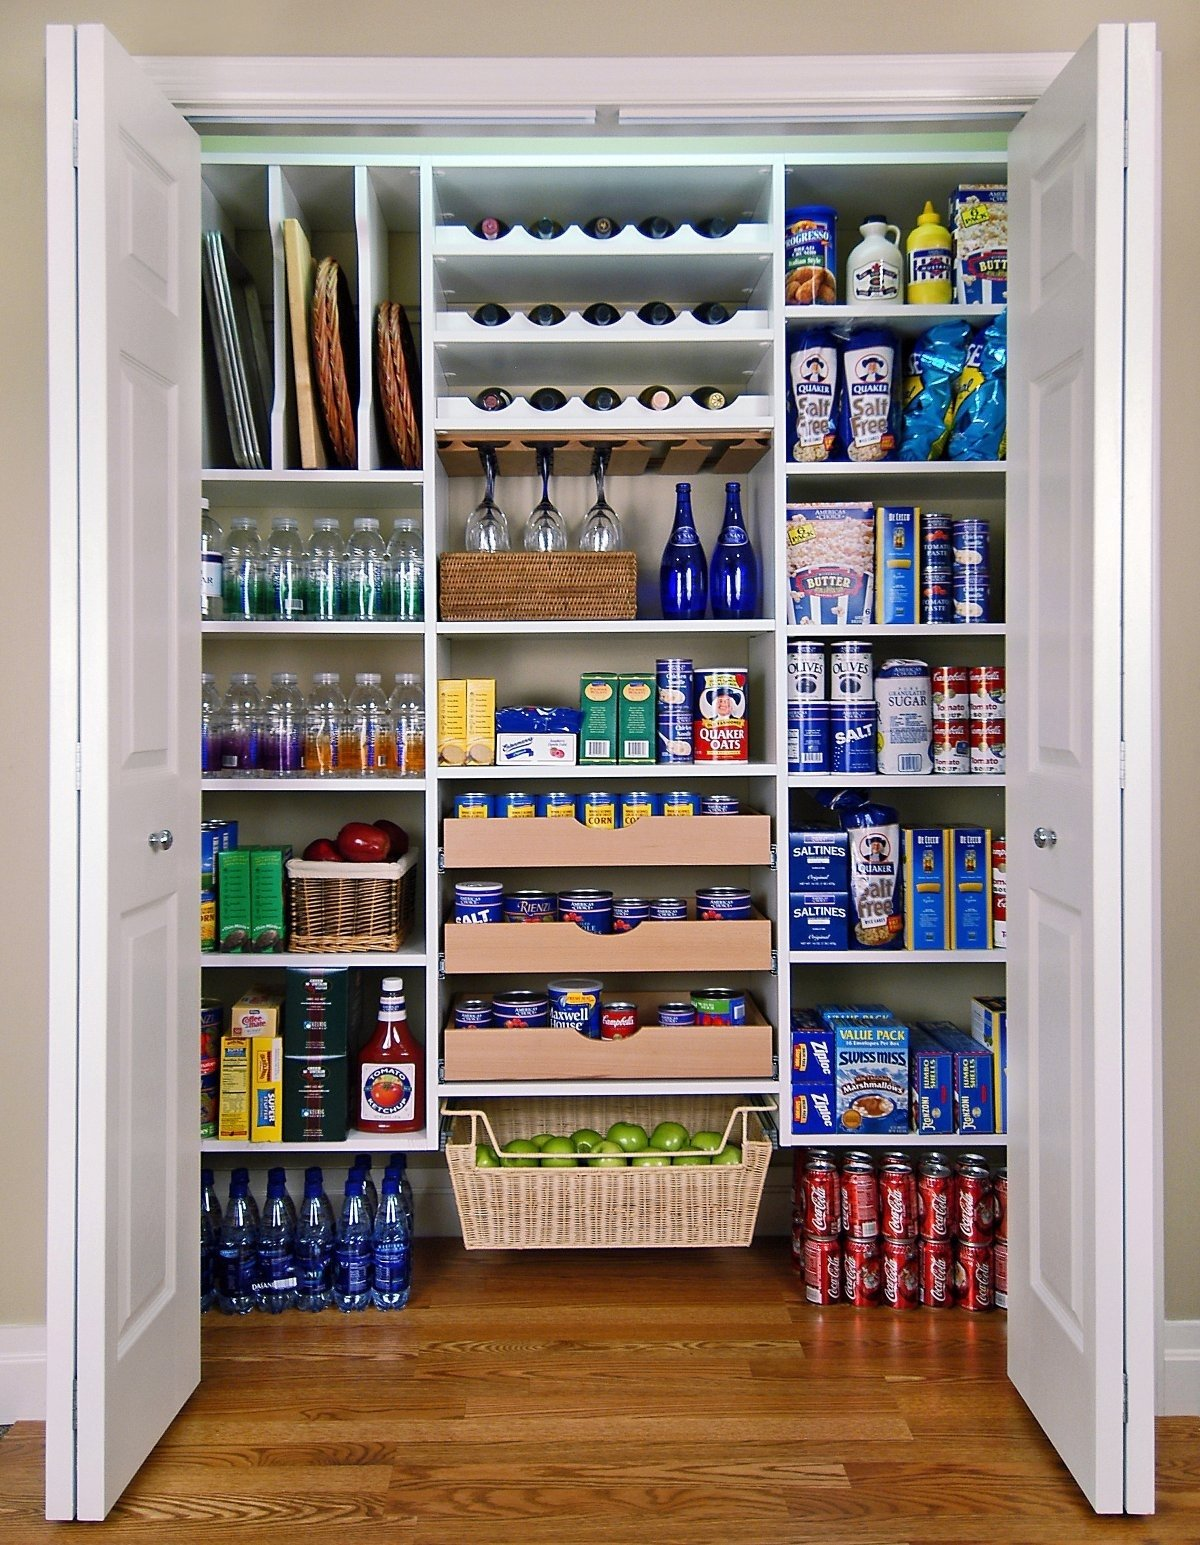 10 Gorgeous Organization Ideas For Small Apartments diy organization ideas for small spaces diy storage ideas for small 2021